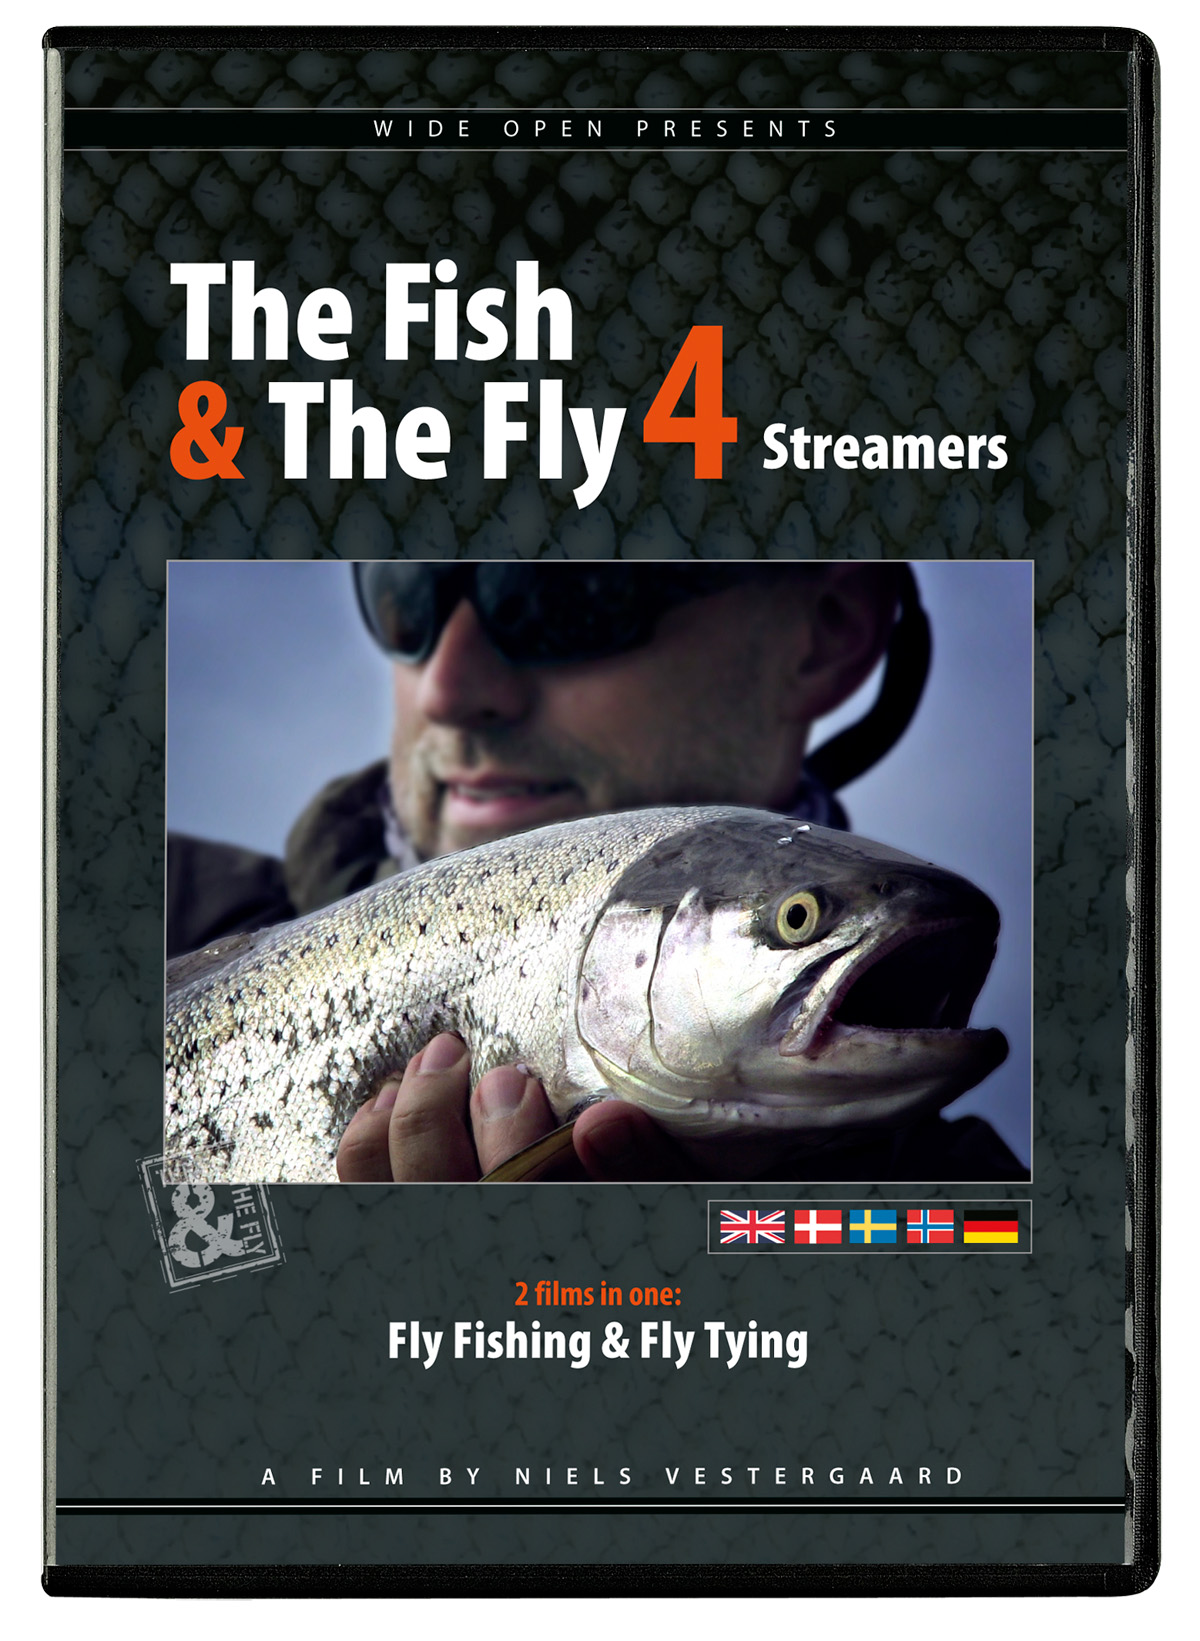 The Fish & The Fly 4 Streamers DVD